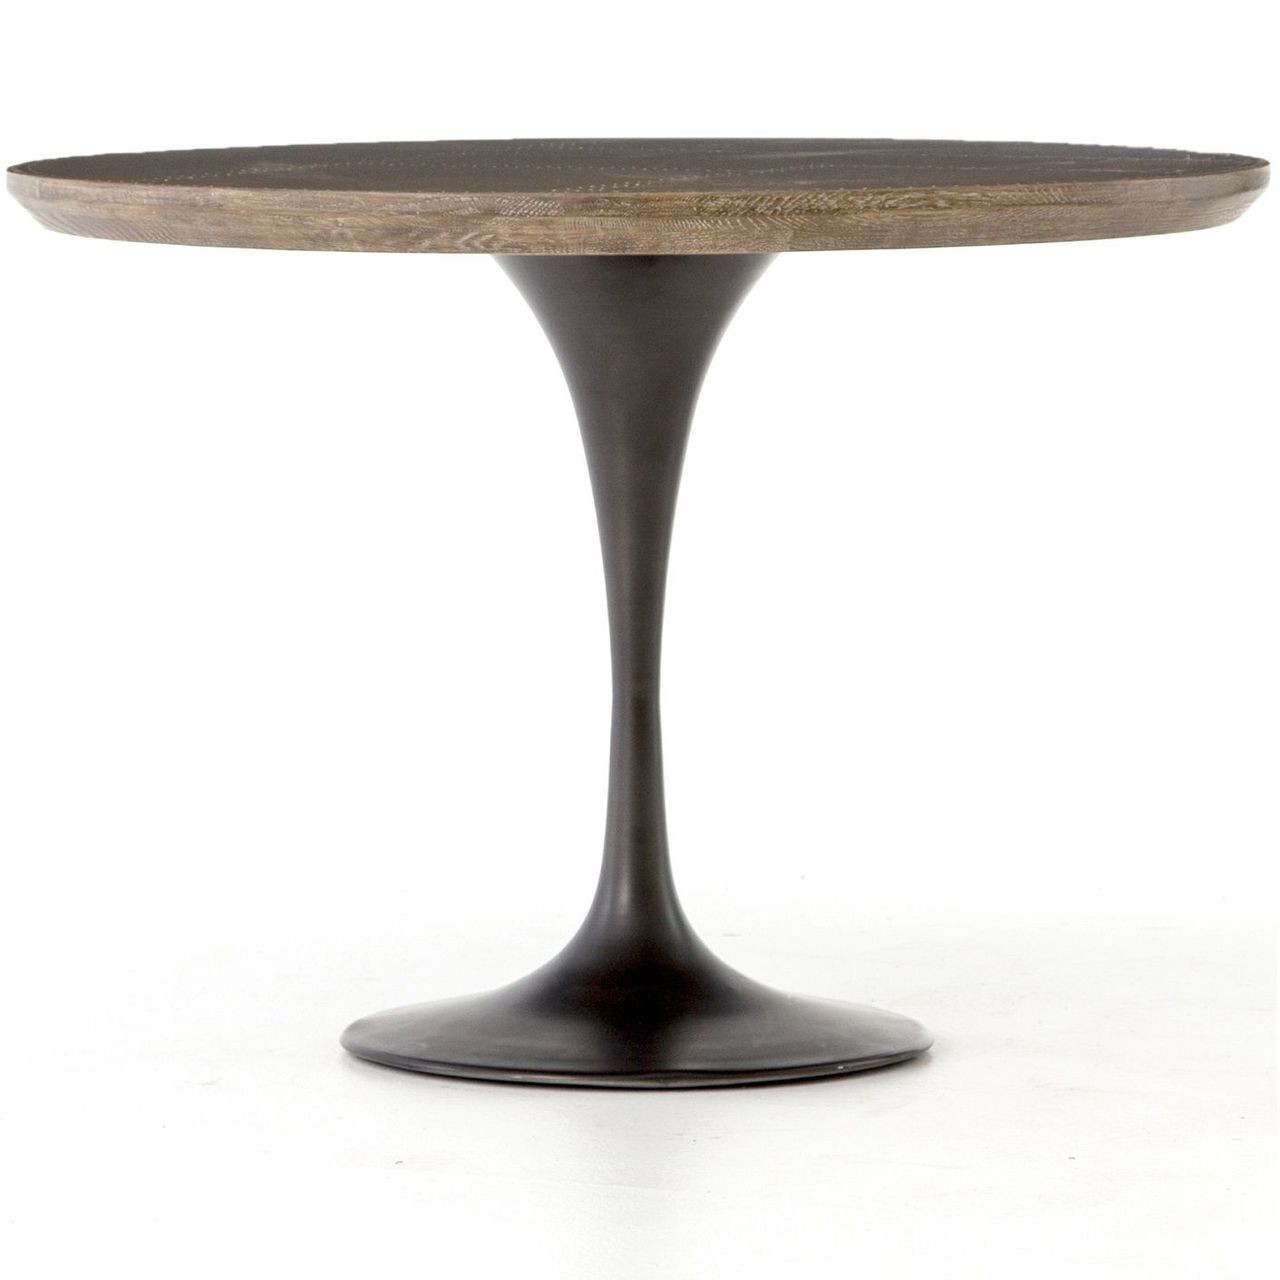 Tulip Table Aero Tulip Industrial Brass Clad Top Round Dining Table 42